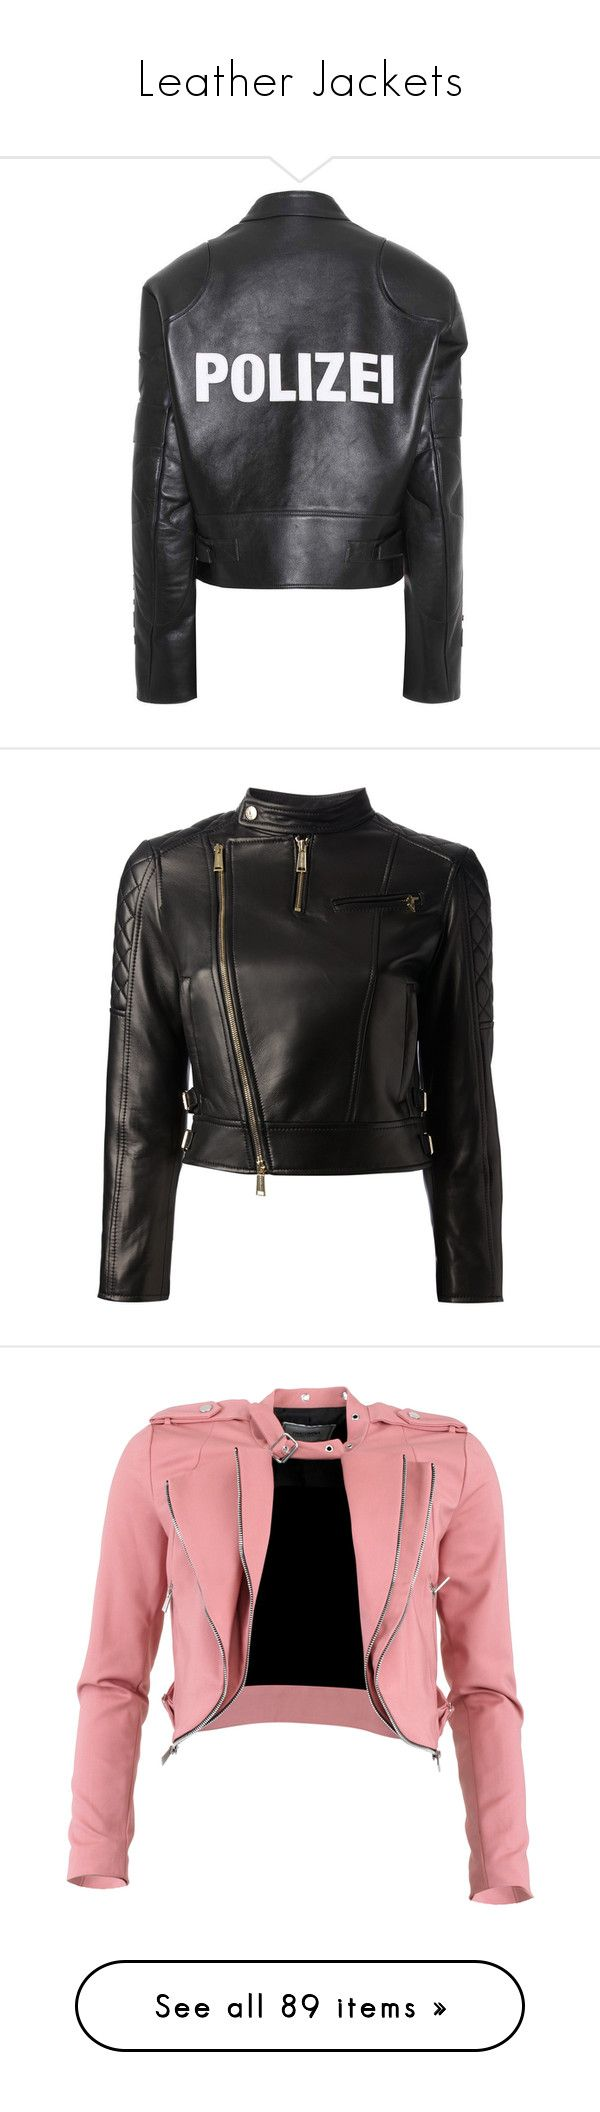 """""""Leather Jackets"""" by vanilla-cupcakee ❤ liked on Polyvore featuring outerwear, jackets, vetements, coats, leather jacket, black, 100 leather jacket, genuine leather jackets, leather jackets and real leather jackets"""